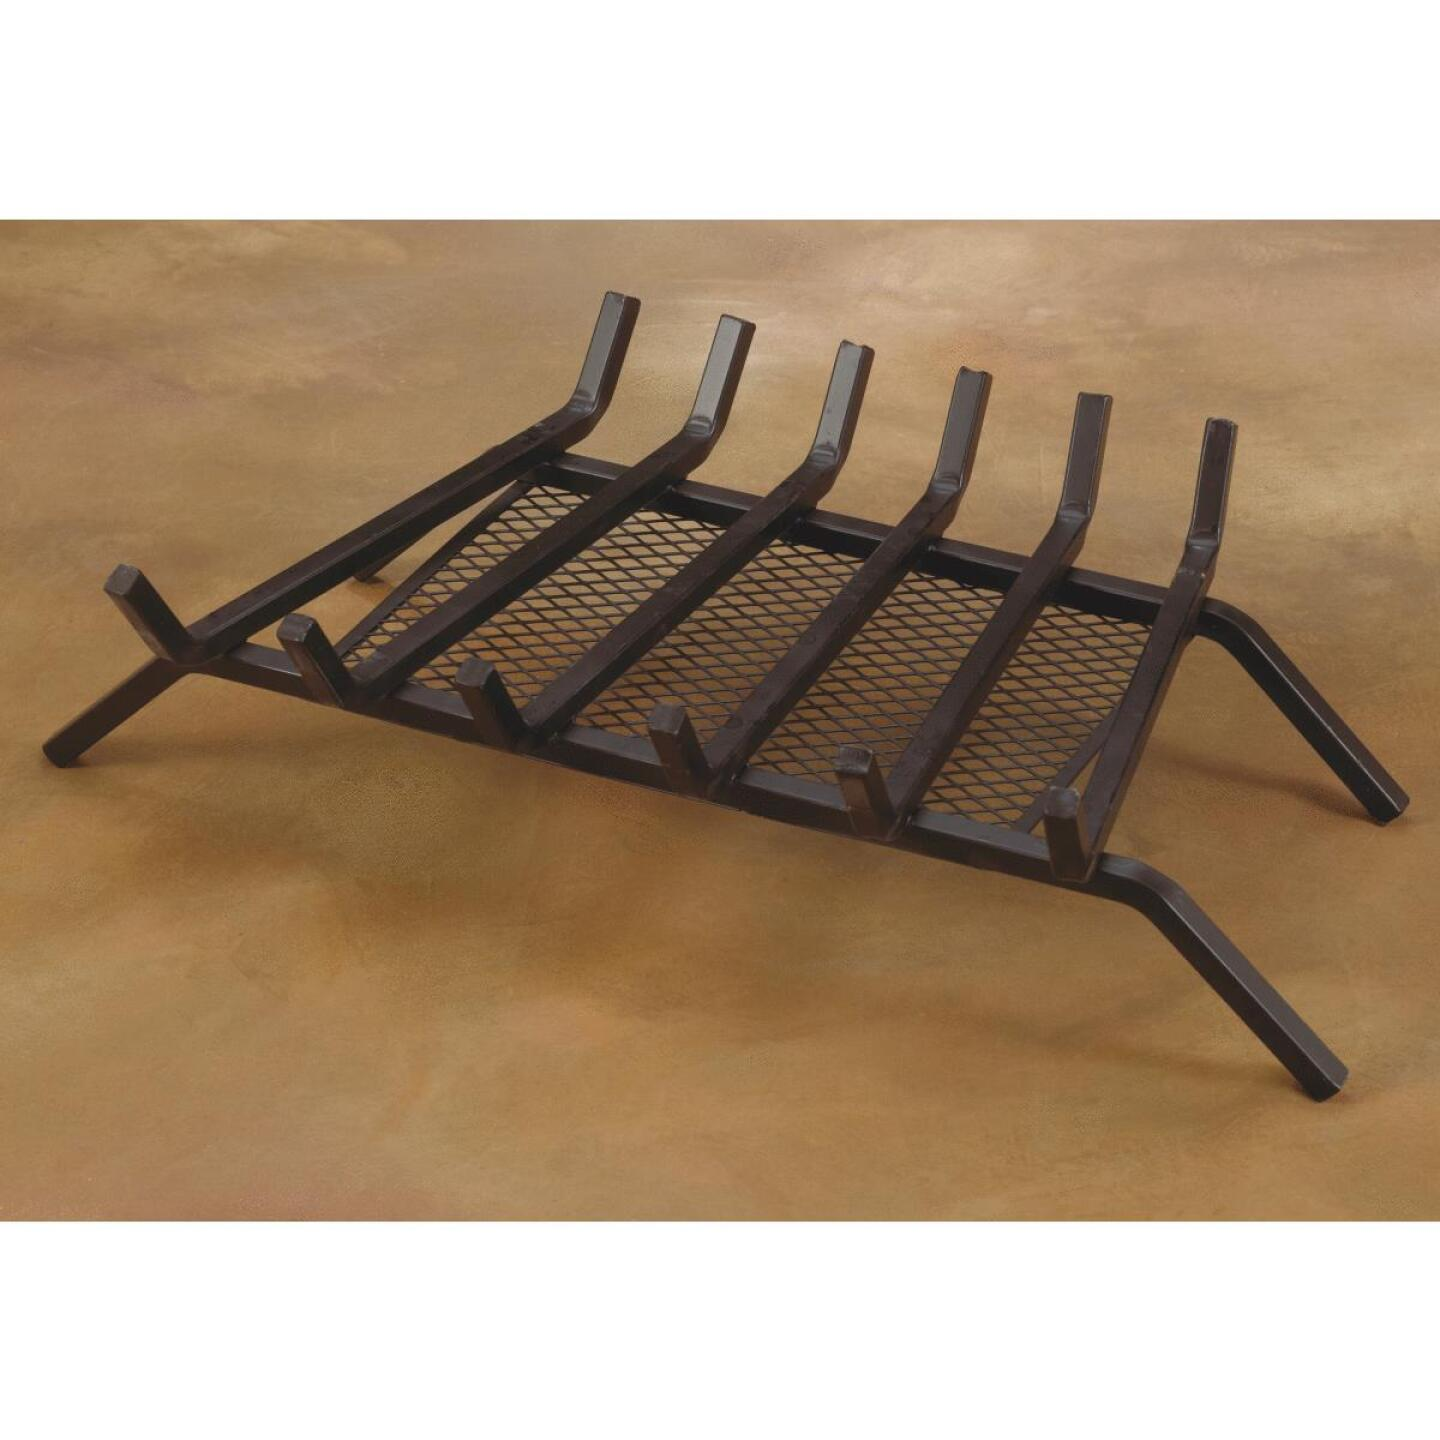 Home Impressions 27 In. Steel Fireplace Grate with Ember Screen Image 3